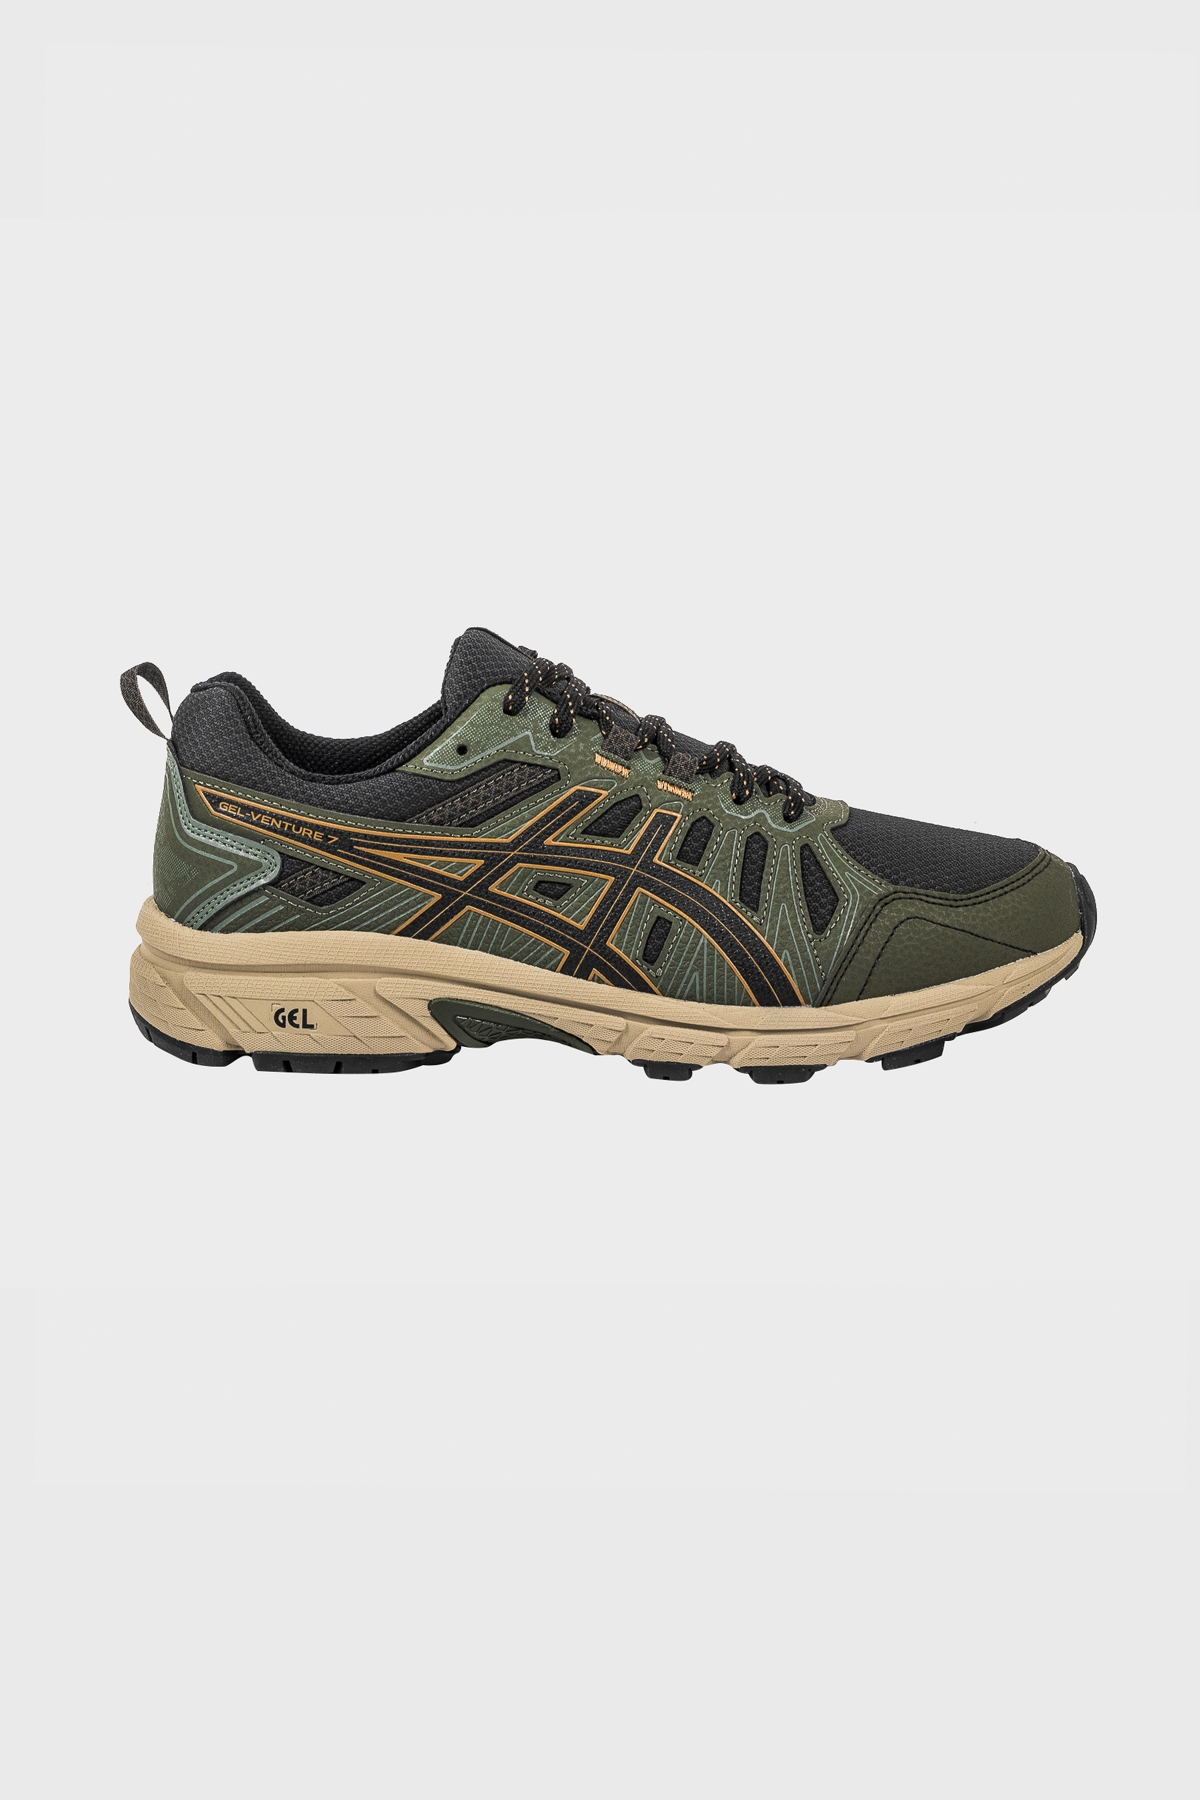 Asics - Gel Venture 7 - black tan presidio